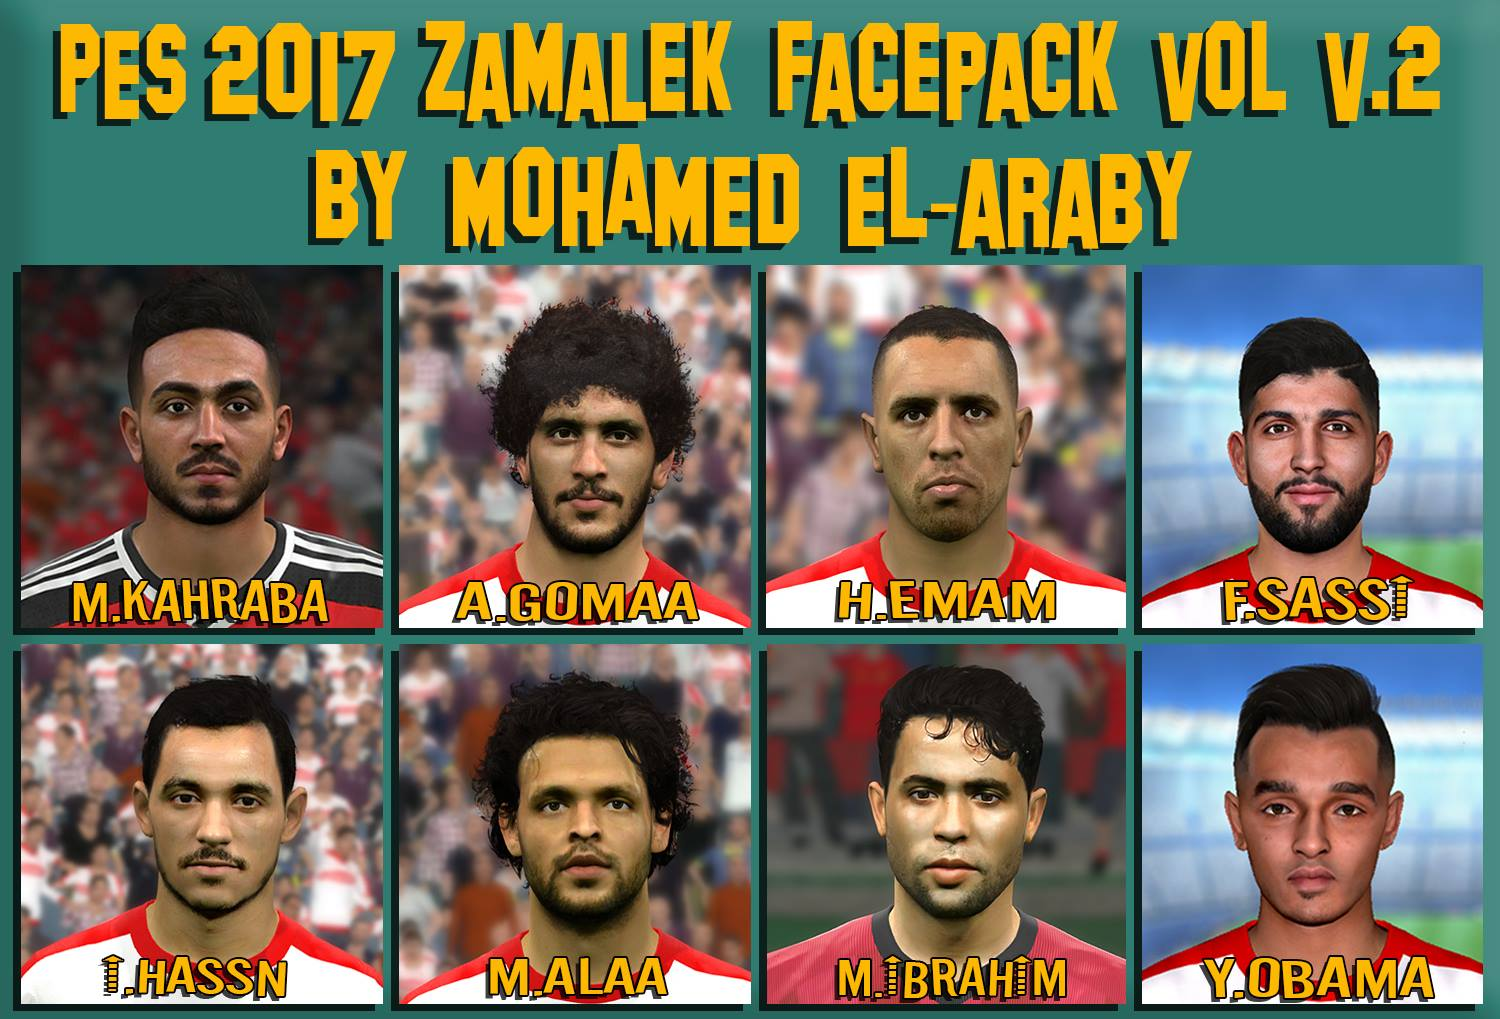 PES 2017 Zamalek facepack Vol. 2 by M.Elaraby Facemaker